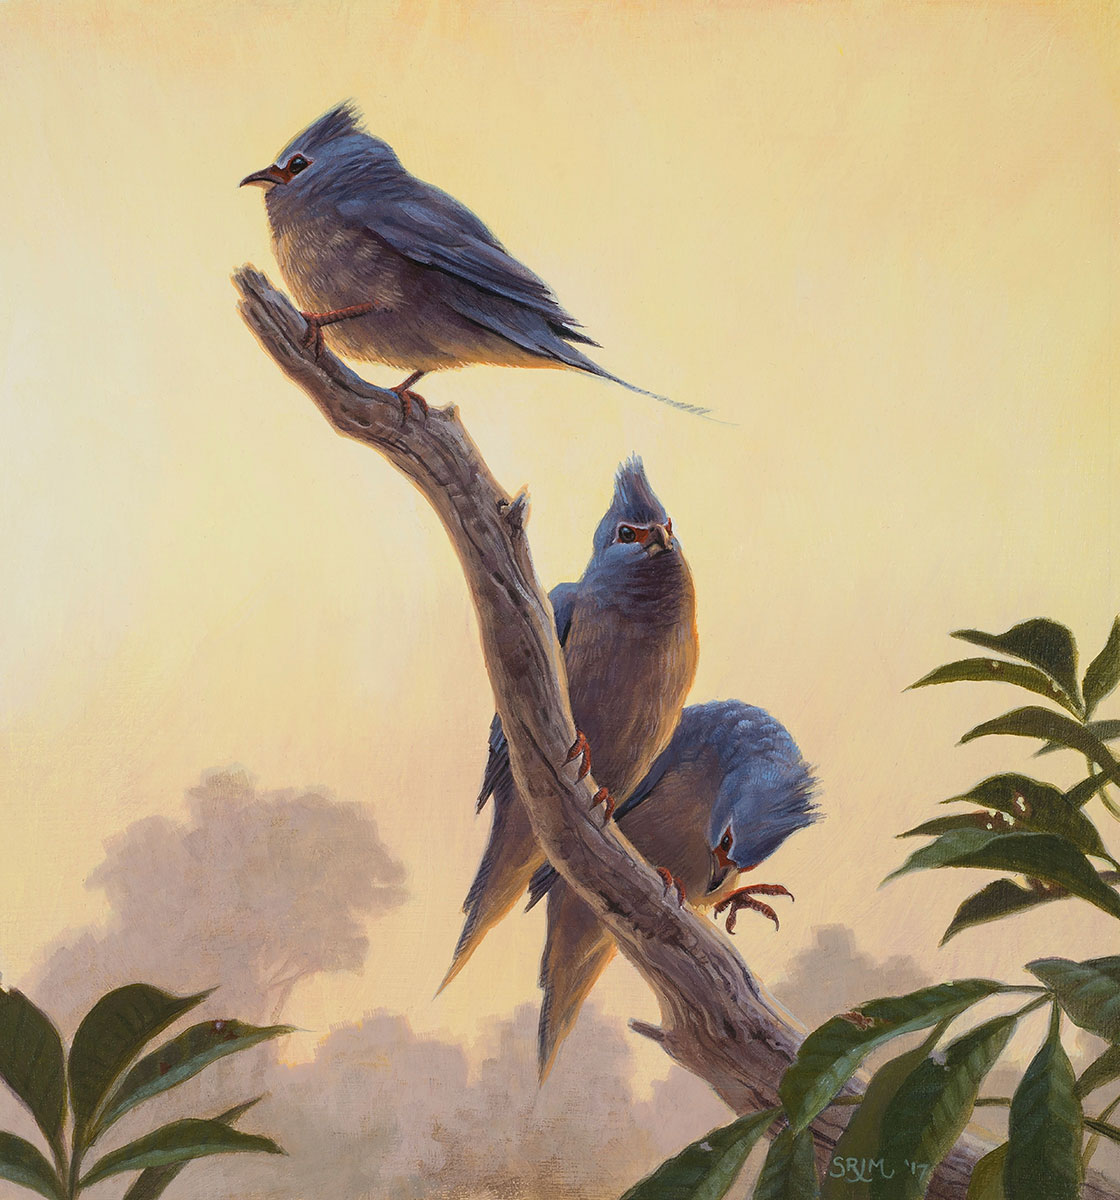 species of ancient bird discovered in new mexico